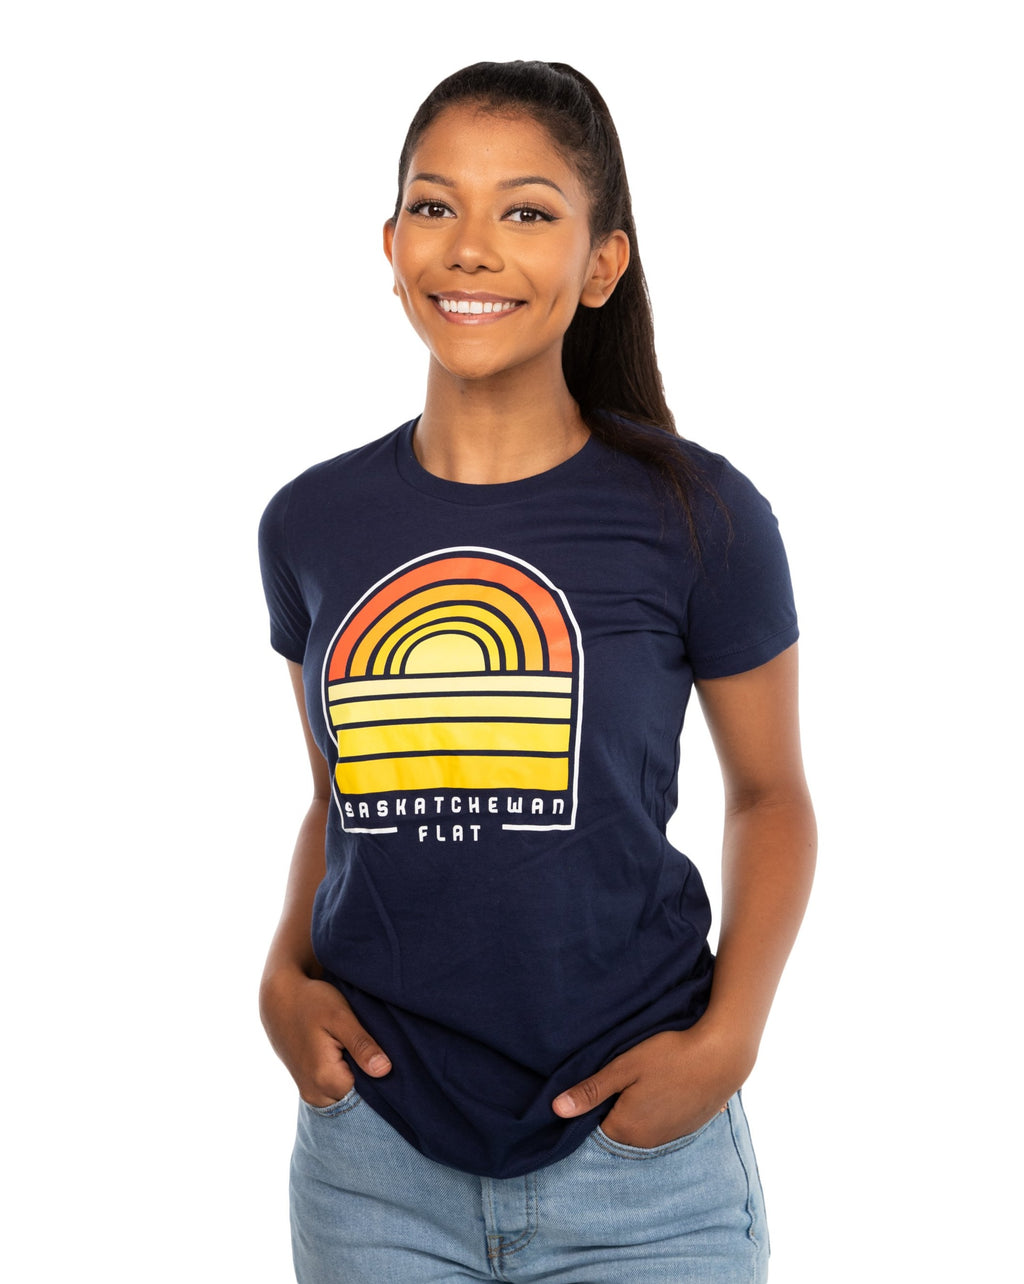 FLAT // Sask Sunset / Ladies T-Shirt